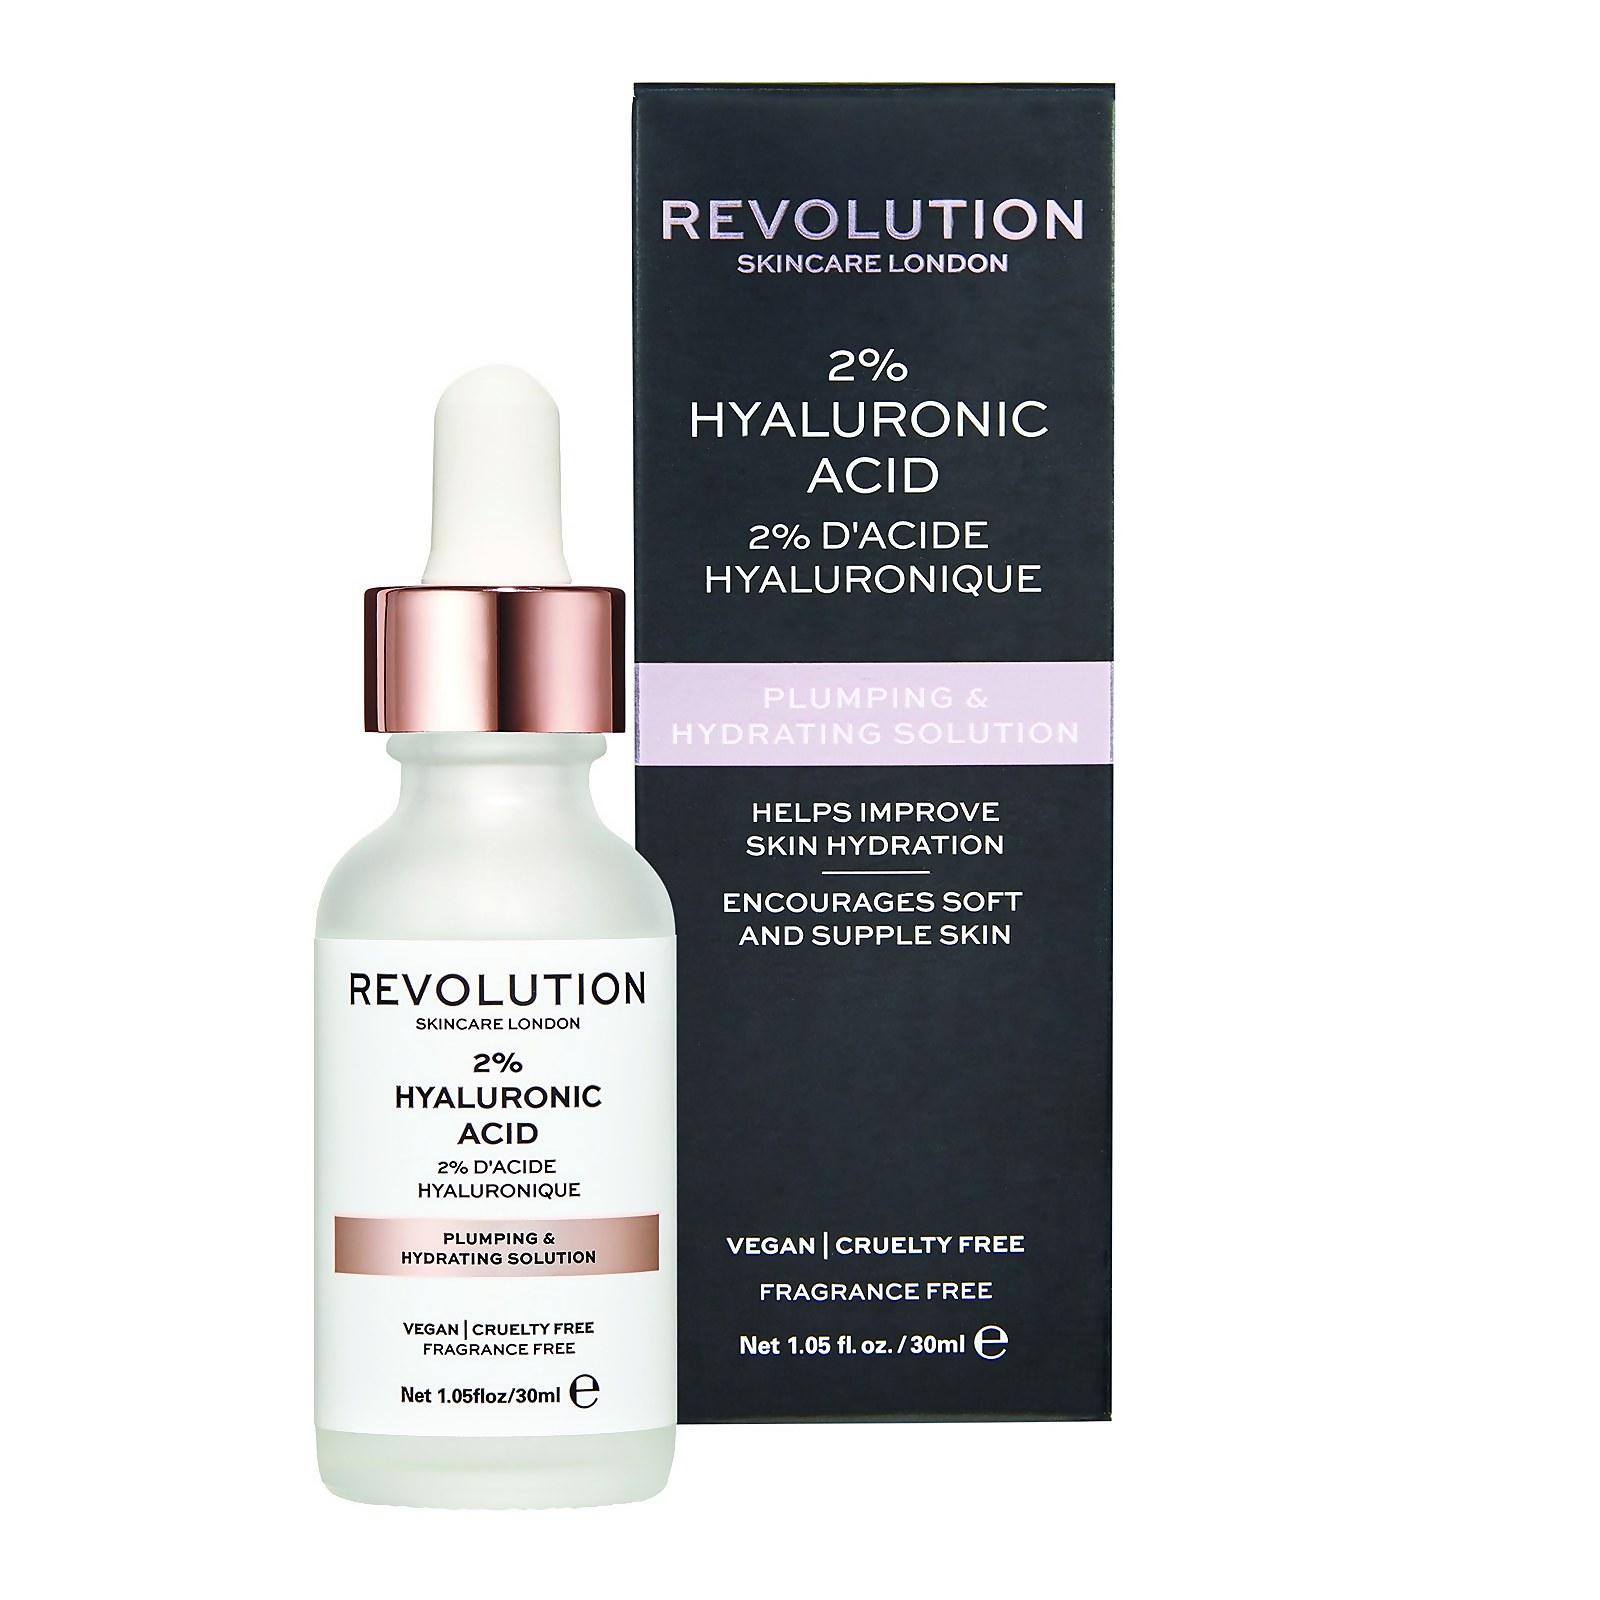 Revolution Skincare Plumping & Hydrating Serum - 2% Hyaluronic Acid